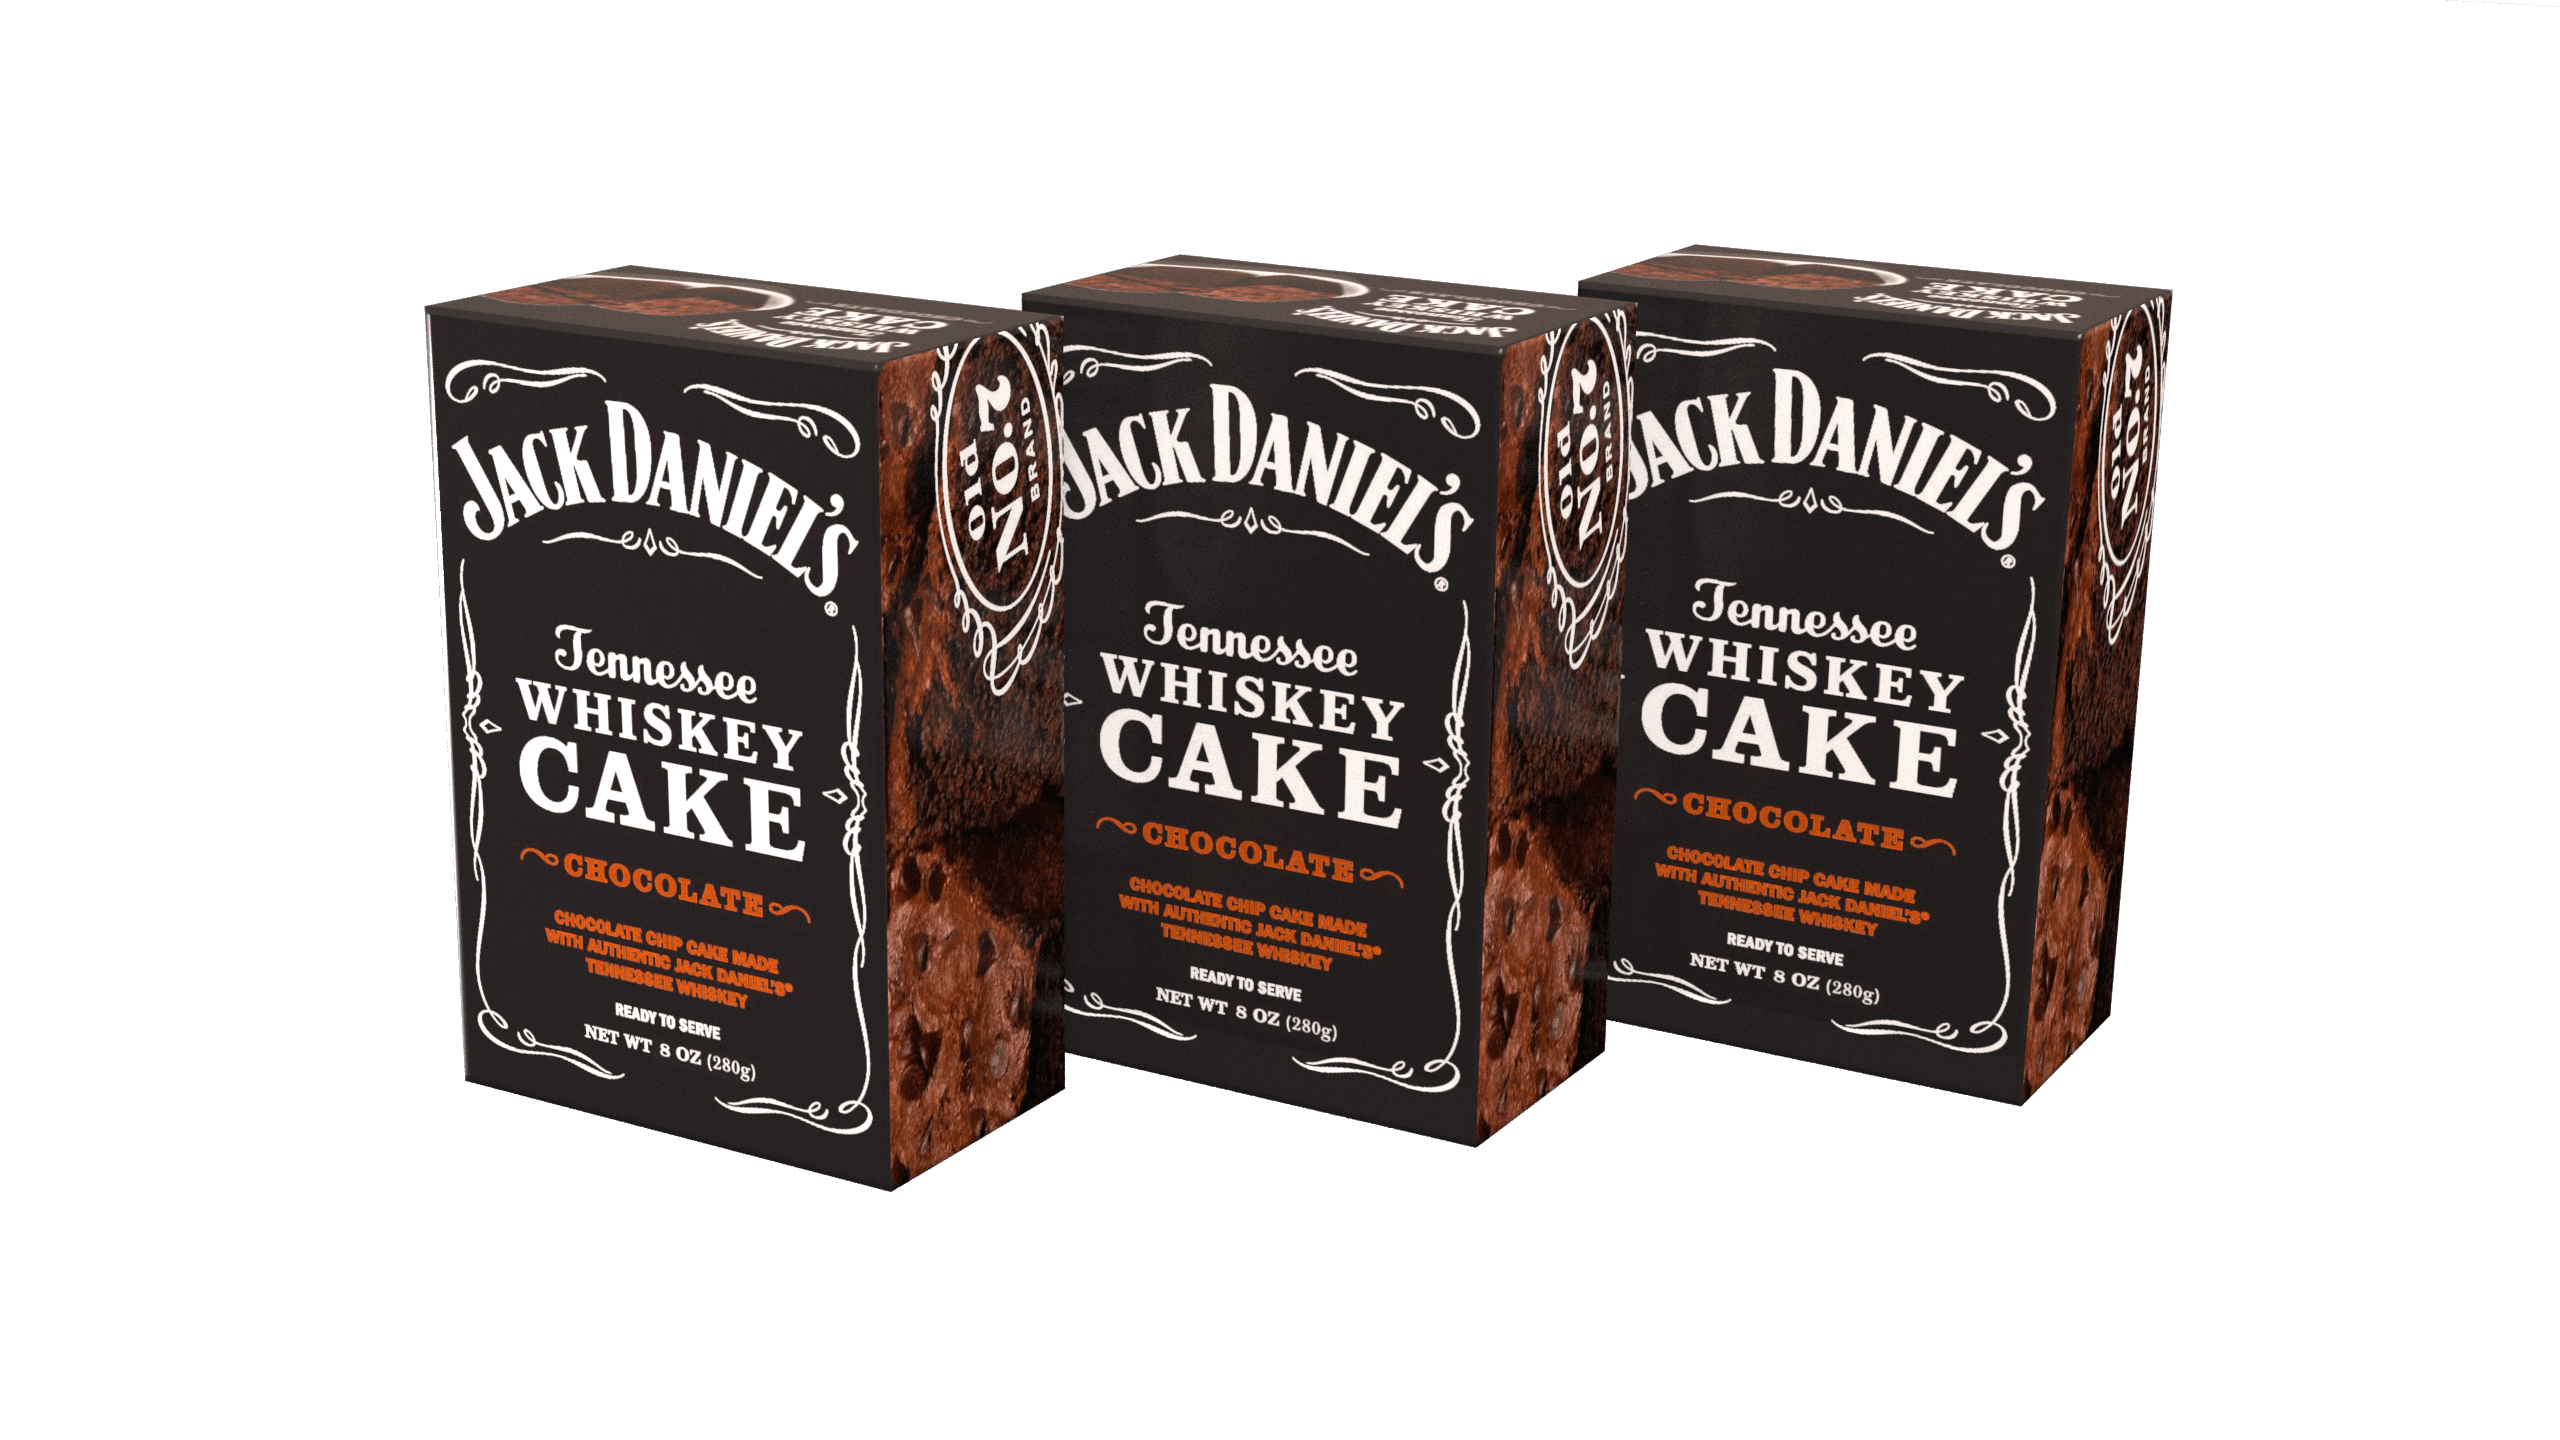 3-Pack of Jack Daniel's Tennessee Whiskey Cake - Chocolate JD308CHO